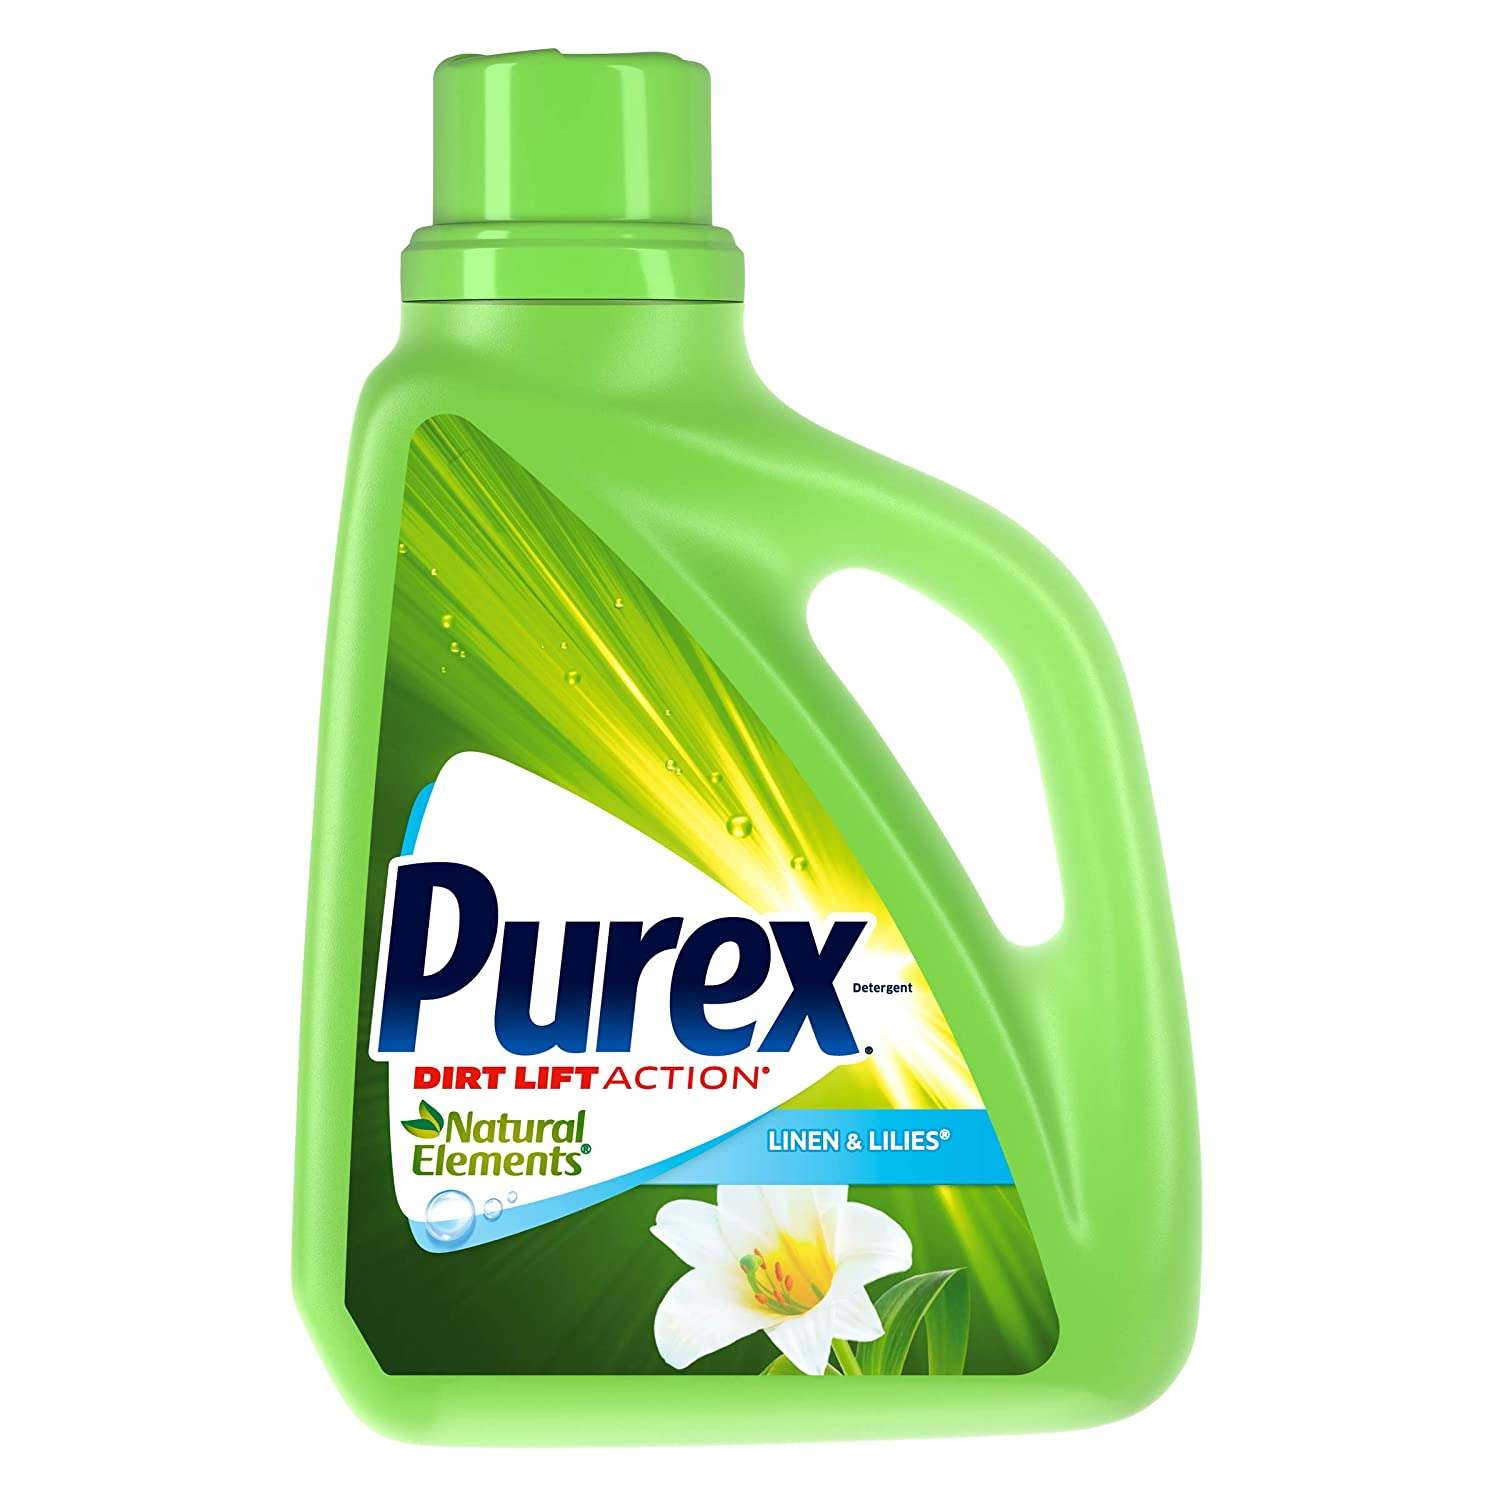 Purex Liquid Natural Elements Laundry Detergent, Linen & Lilies, 75 oz (50 loads)